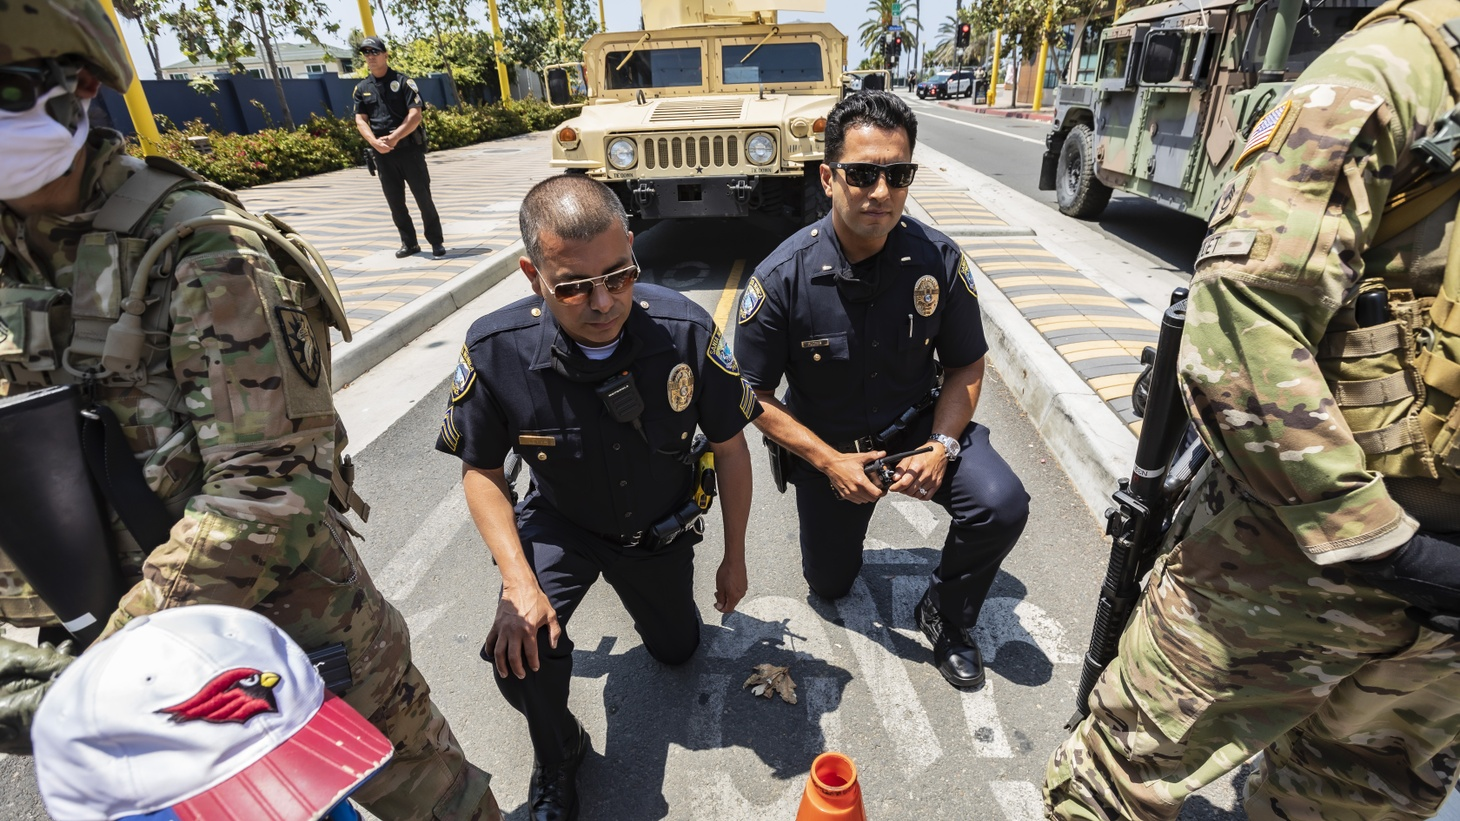 Santa Monica police officers Sgt. Leyva and Lt. Flores take a knee during a moment of silence for George Floyd, during a protest against racial injustice. June 4, 2020, Santa Monica, CA.